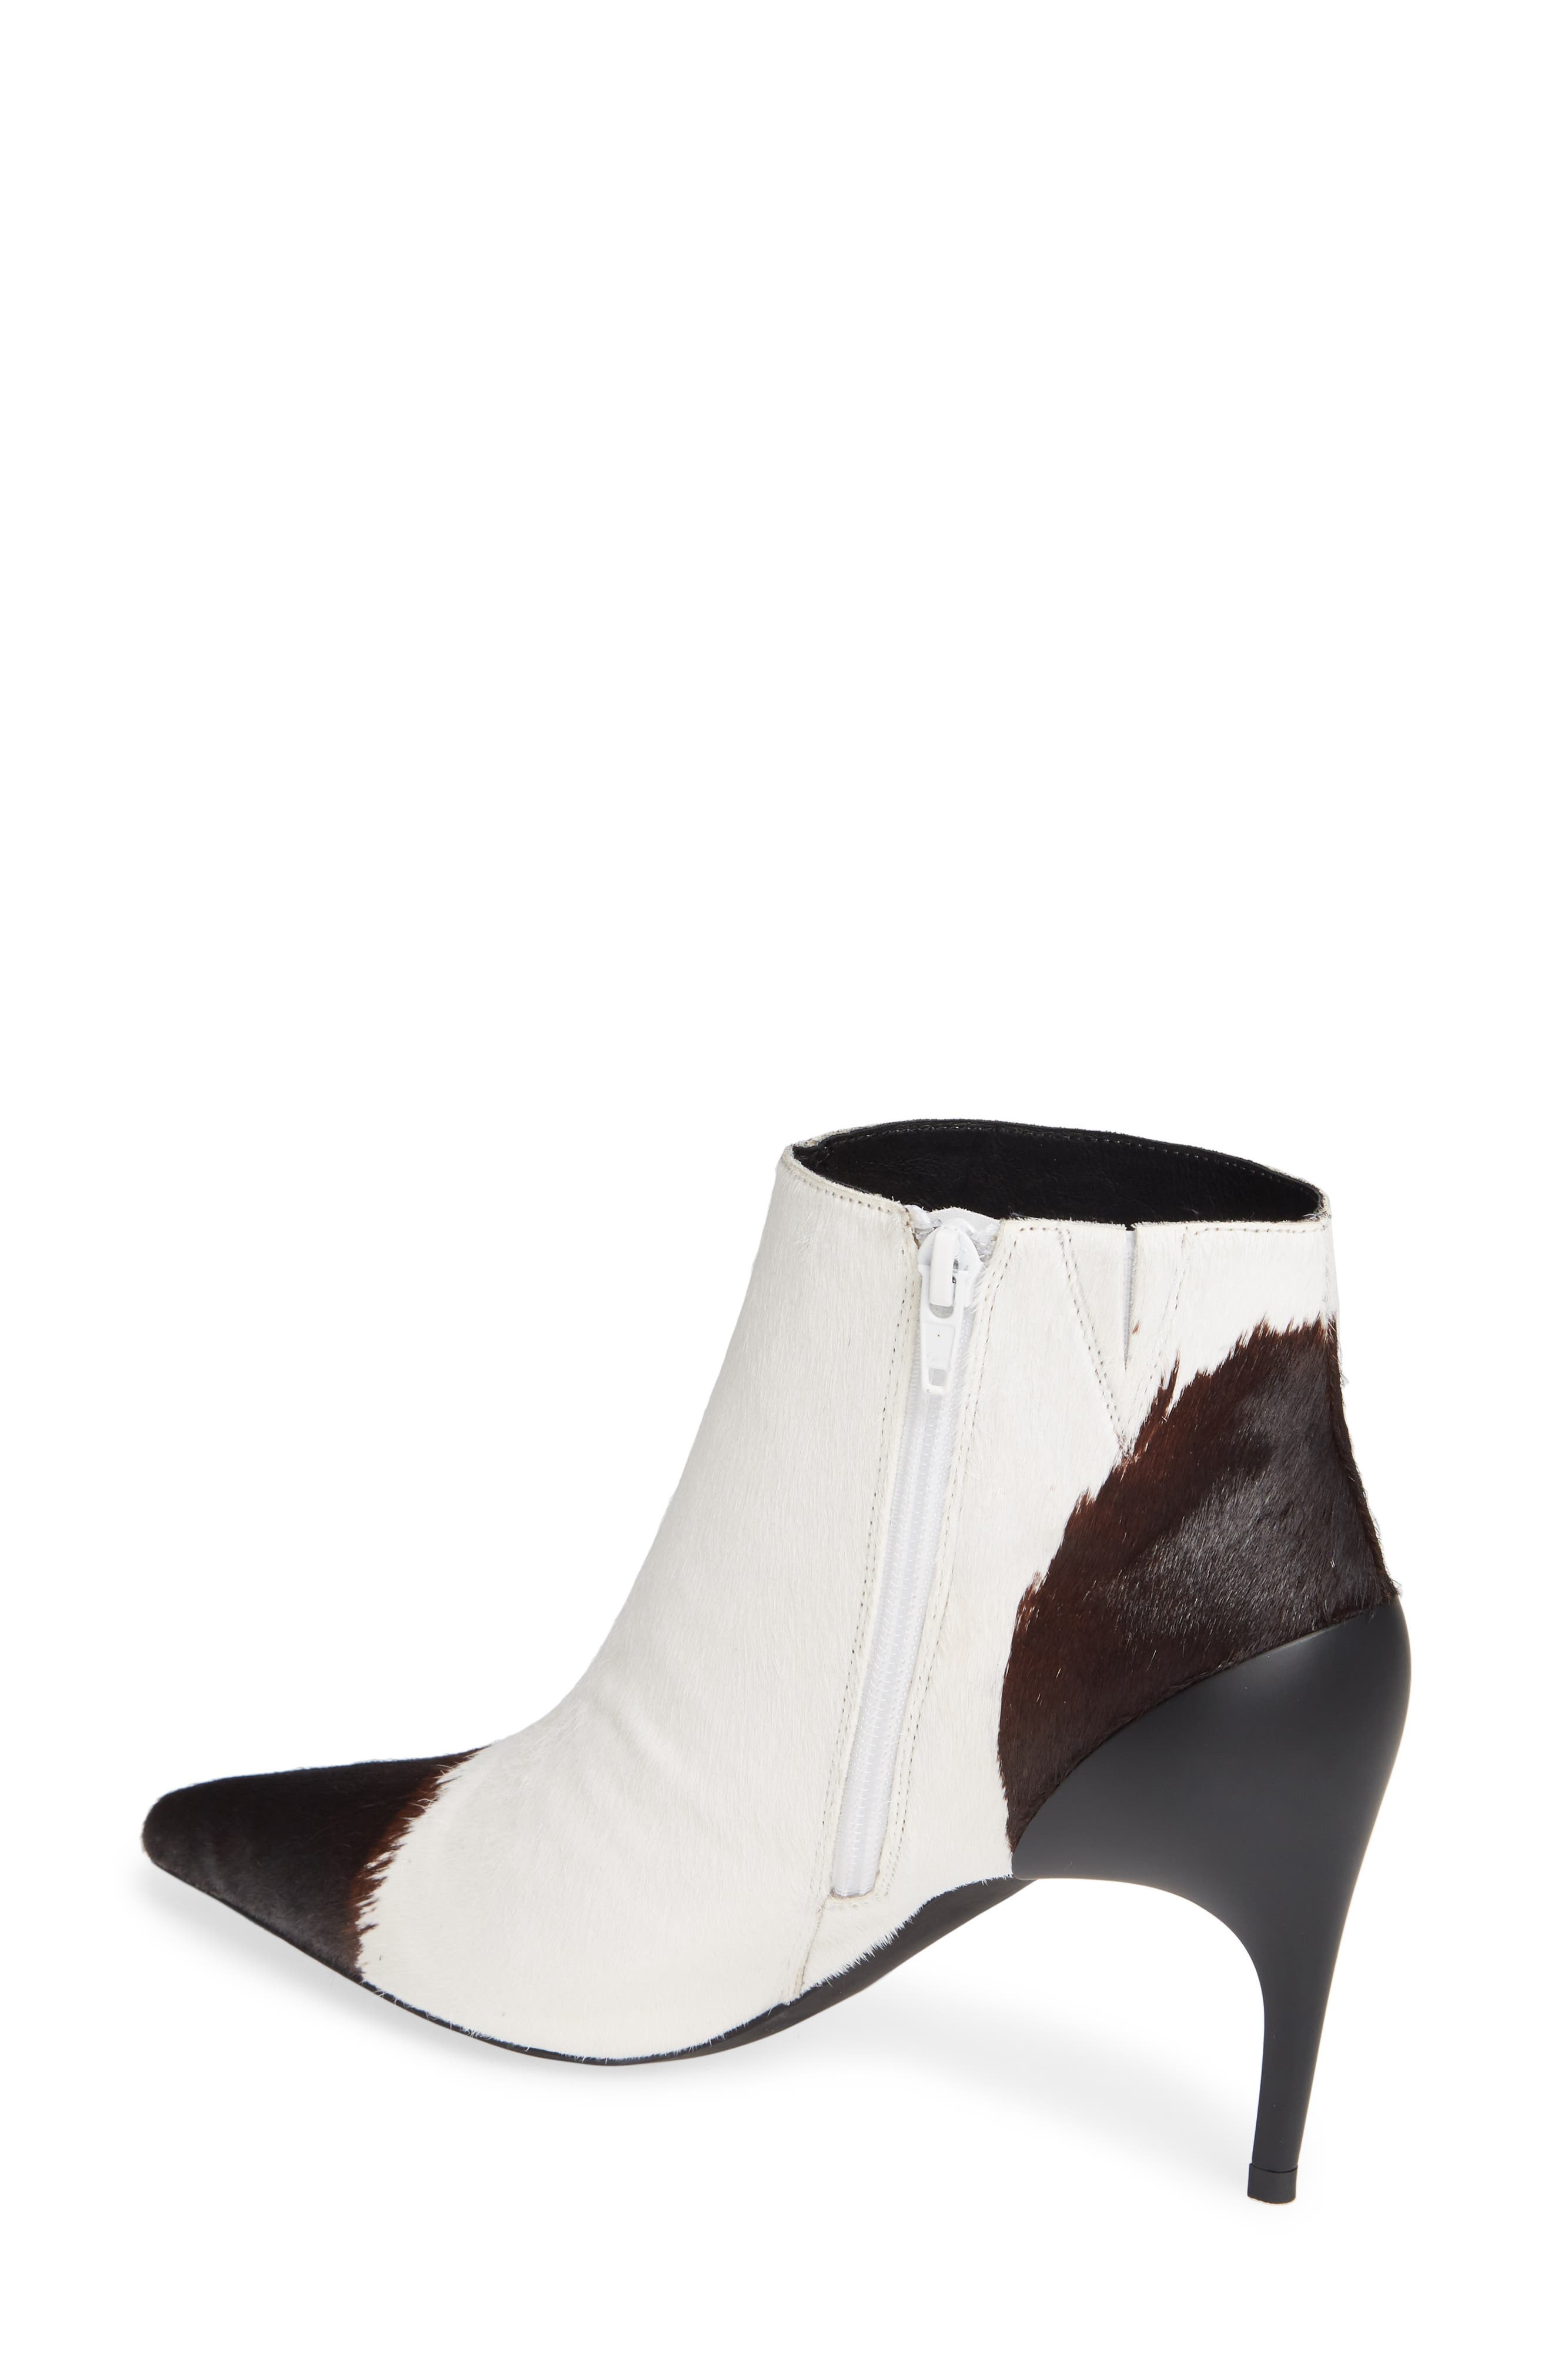 JEFFREY CAMPBELL,                             Barbell-F Genuine Calf Hair Bootie,                             Alternate thumbnail 2, color,                             001